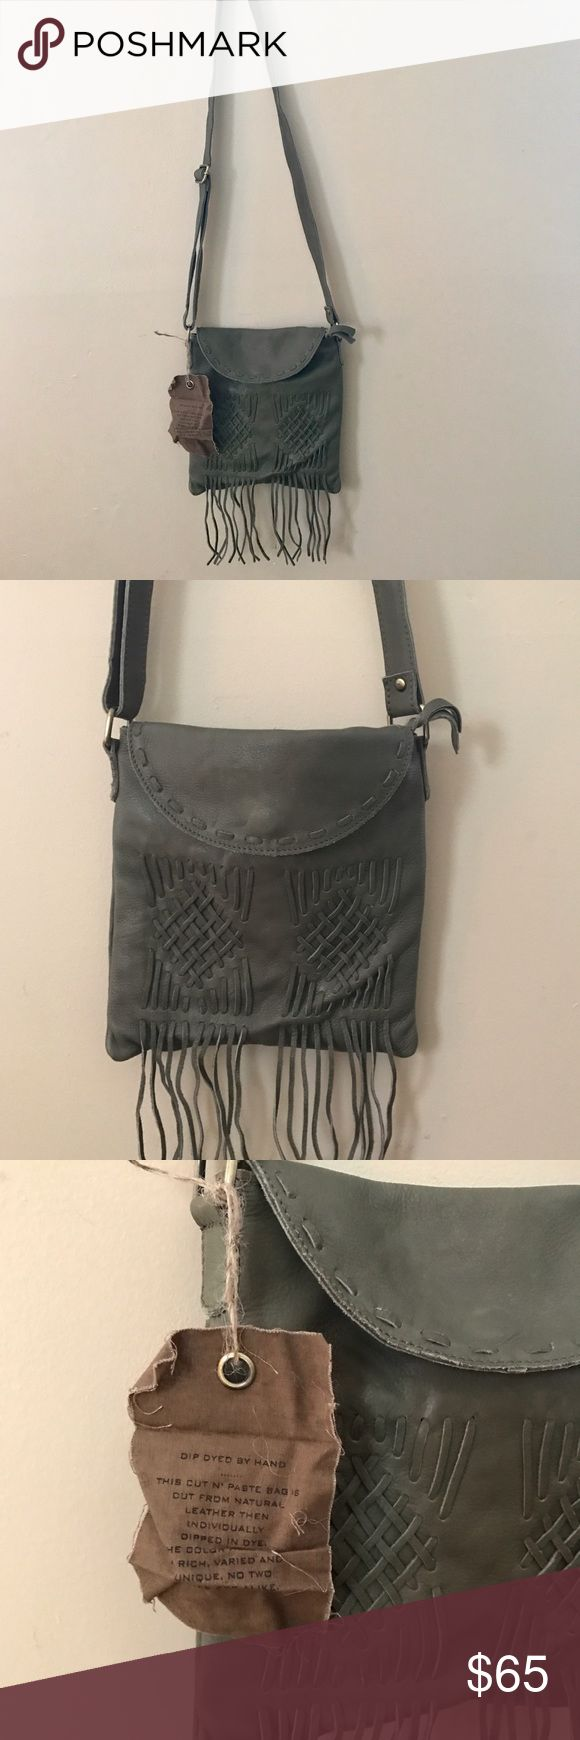 Free People Cut N' Paste Harper Fringe Bag Free People Cut N' Paste Harper Fringe Bag   - 100% Leather  - New With Tags  - Brand : Cut N' Paste   Planet Blue , Nasty Gal , Asos , Pacsun , Swell , Urban Outfitters , Revolve Clothing , Forever 21  , Shop Bop , Free People , boho , Anthropologie , bohemian , festival fashion , Free People bag  .. ( stores for views ) Free People Bags